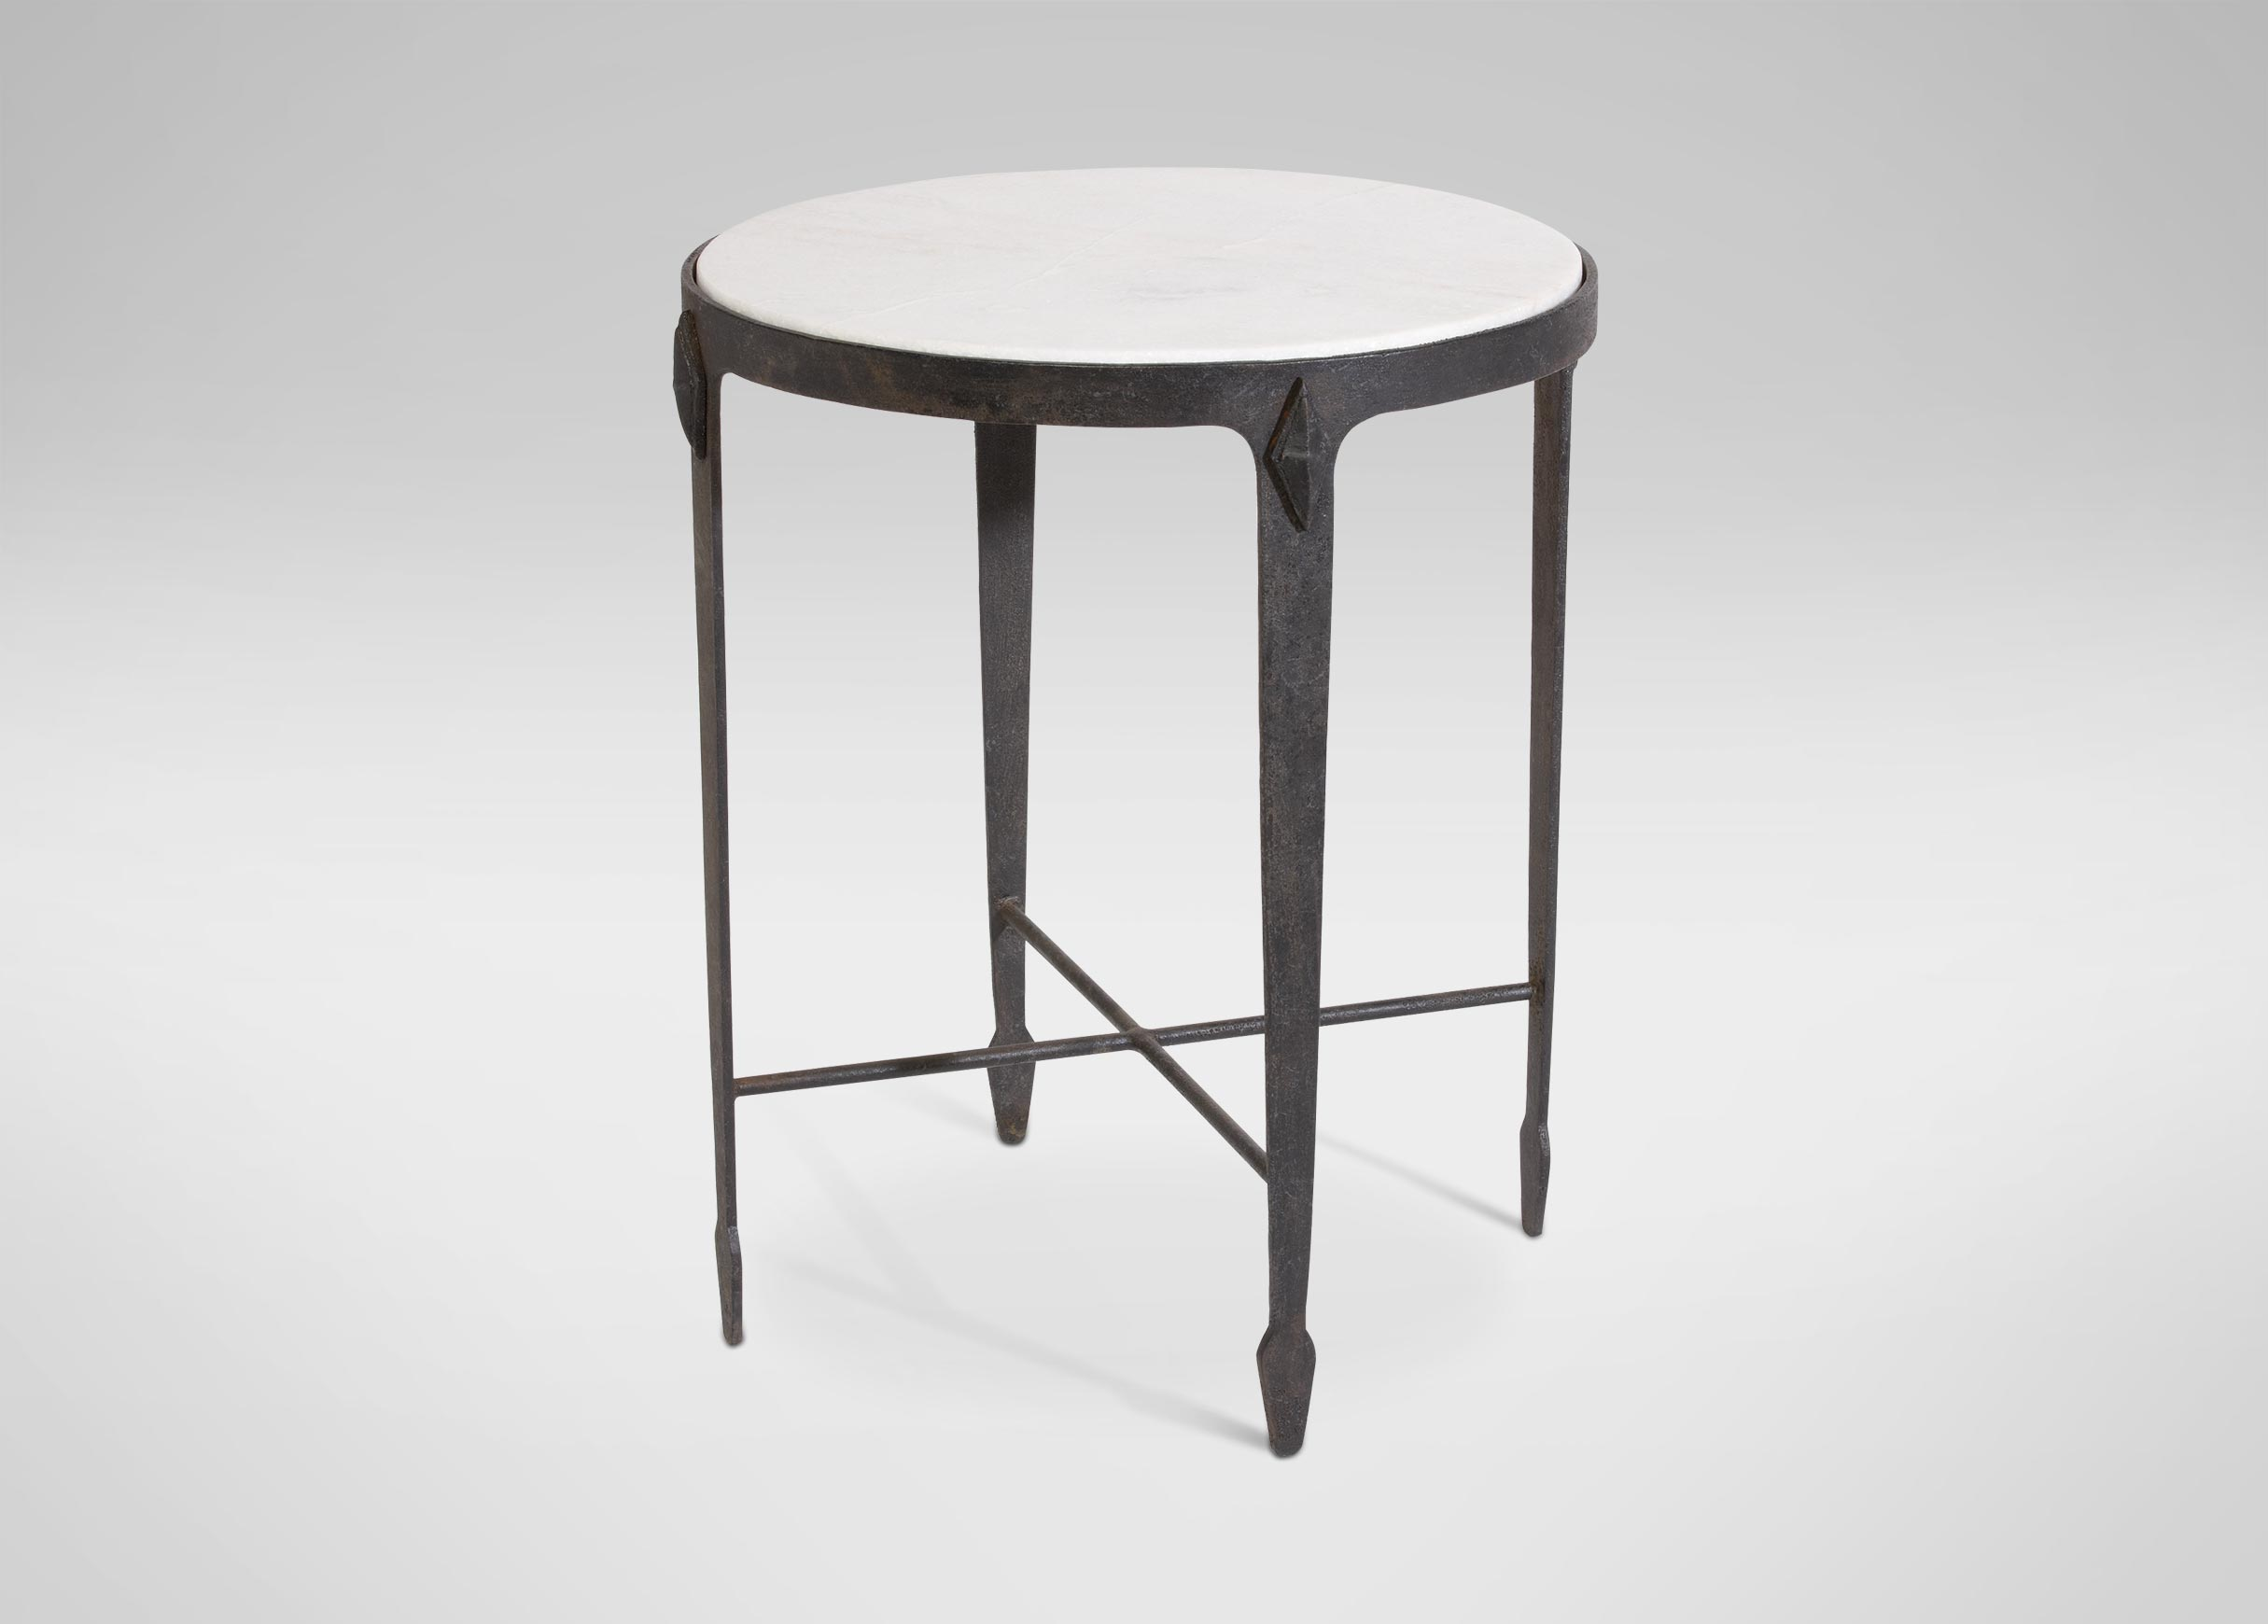 design marble accent table with jaca top ethan allen round white black side quilted runner ideas farmhouse coffee foyer furniture pink metal low trestle magnussen pinebrook end